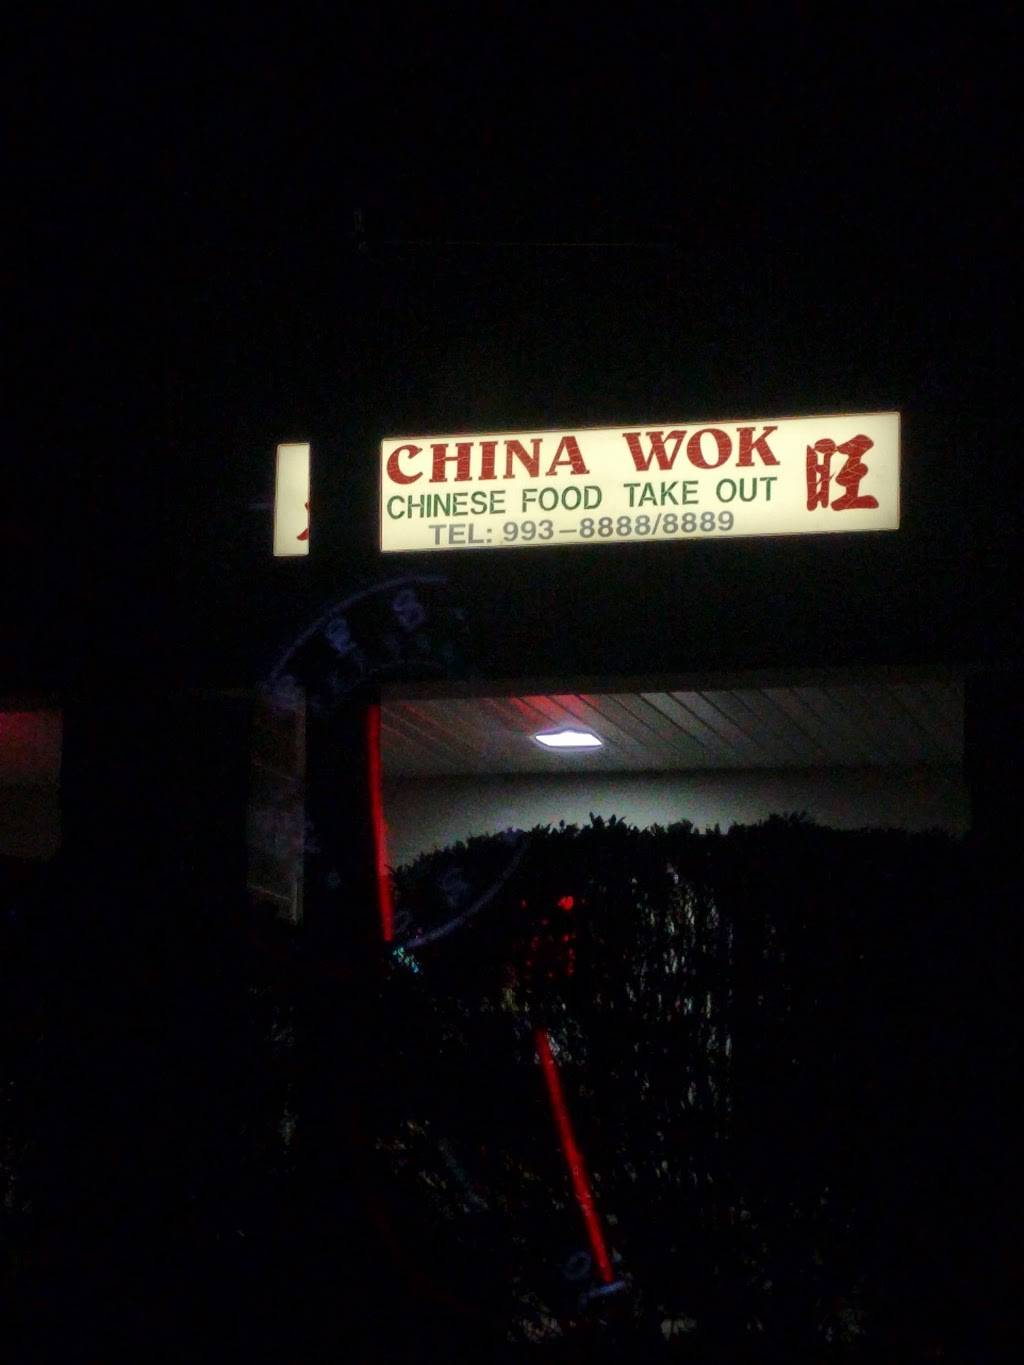 China Wok | meal takeaway | 300 Bailey Dr # 109, Stewartstown, PA 17363, USA | 7179938888 OR +1 717-993-8888